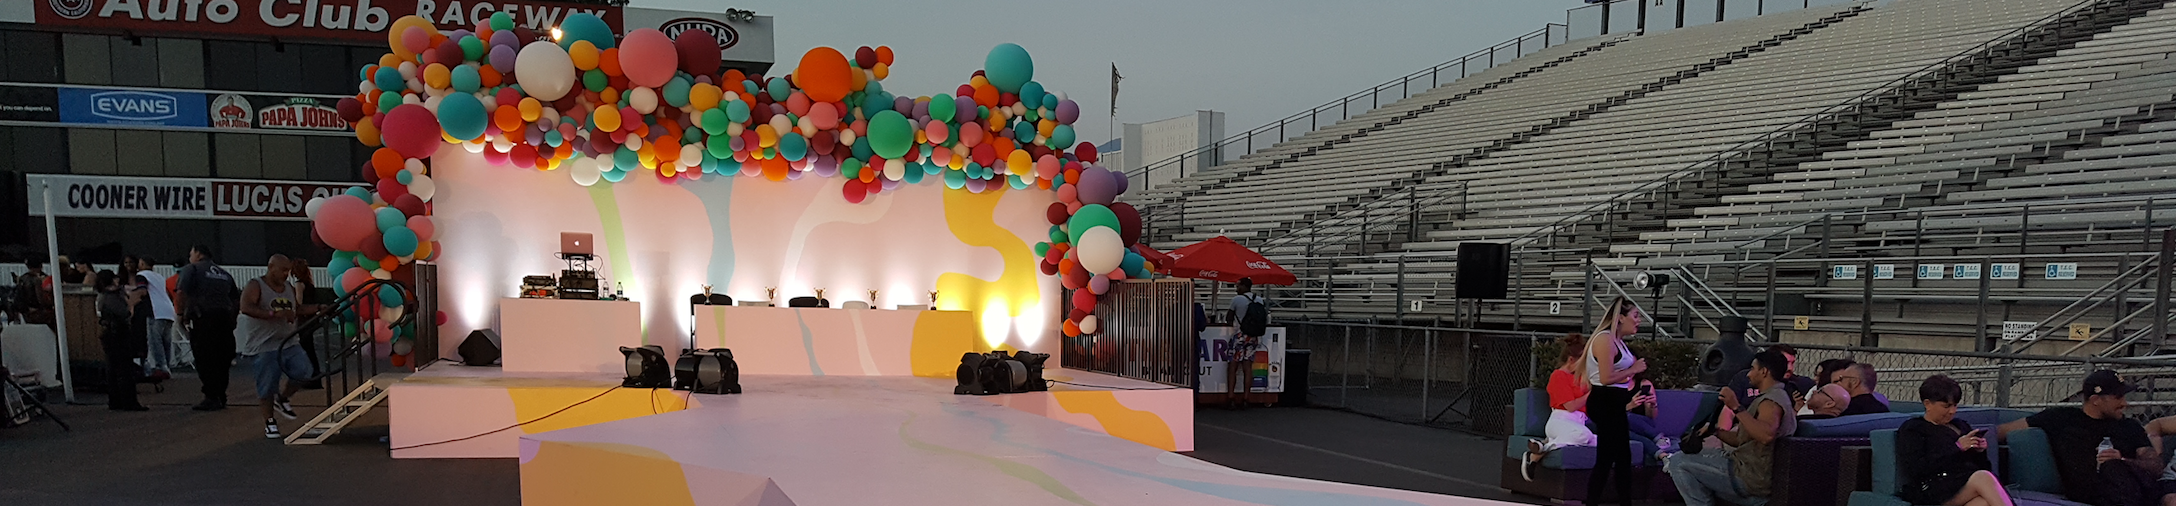 An outdoor stage design from an LGBTQ+ event with colorful balloons and splatter paint